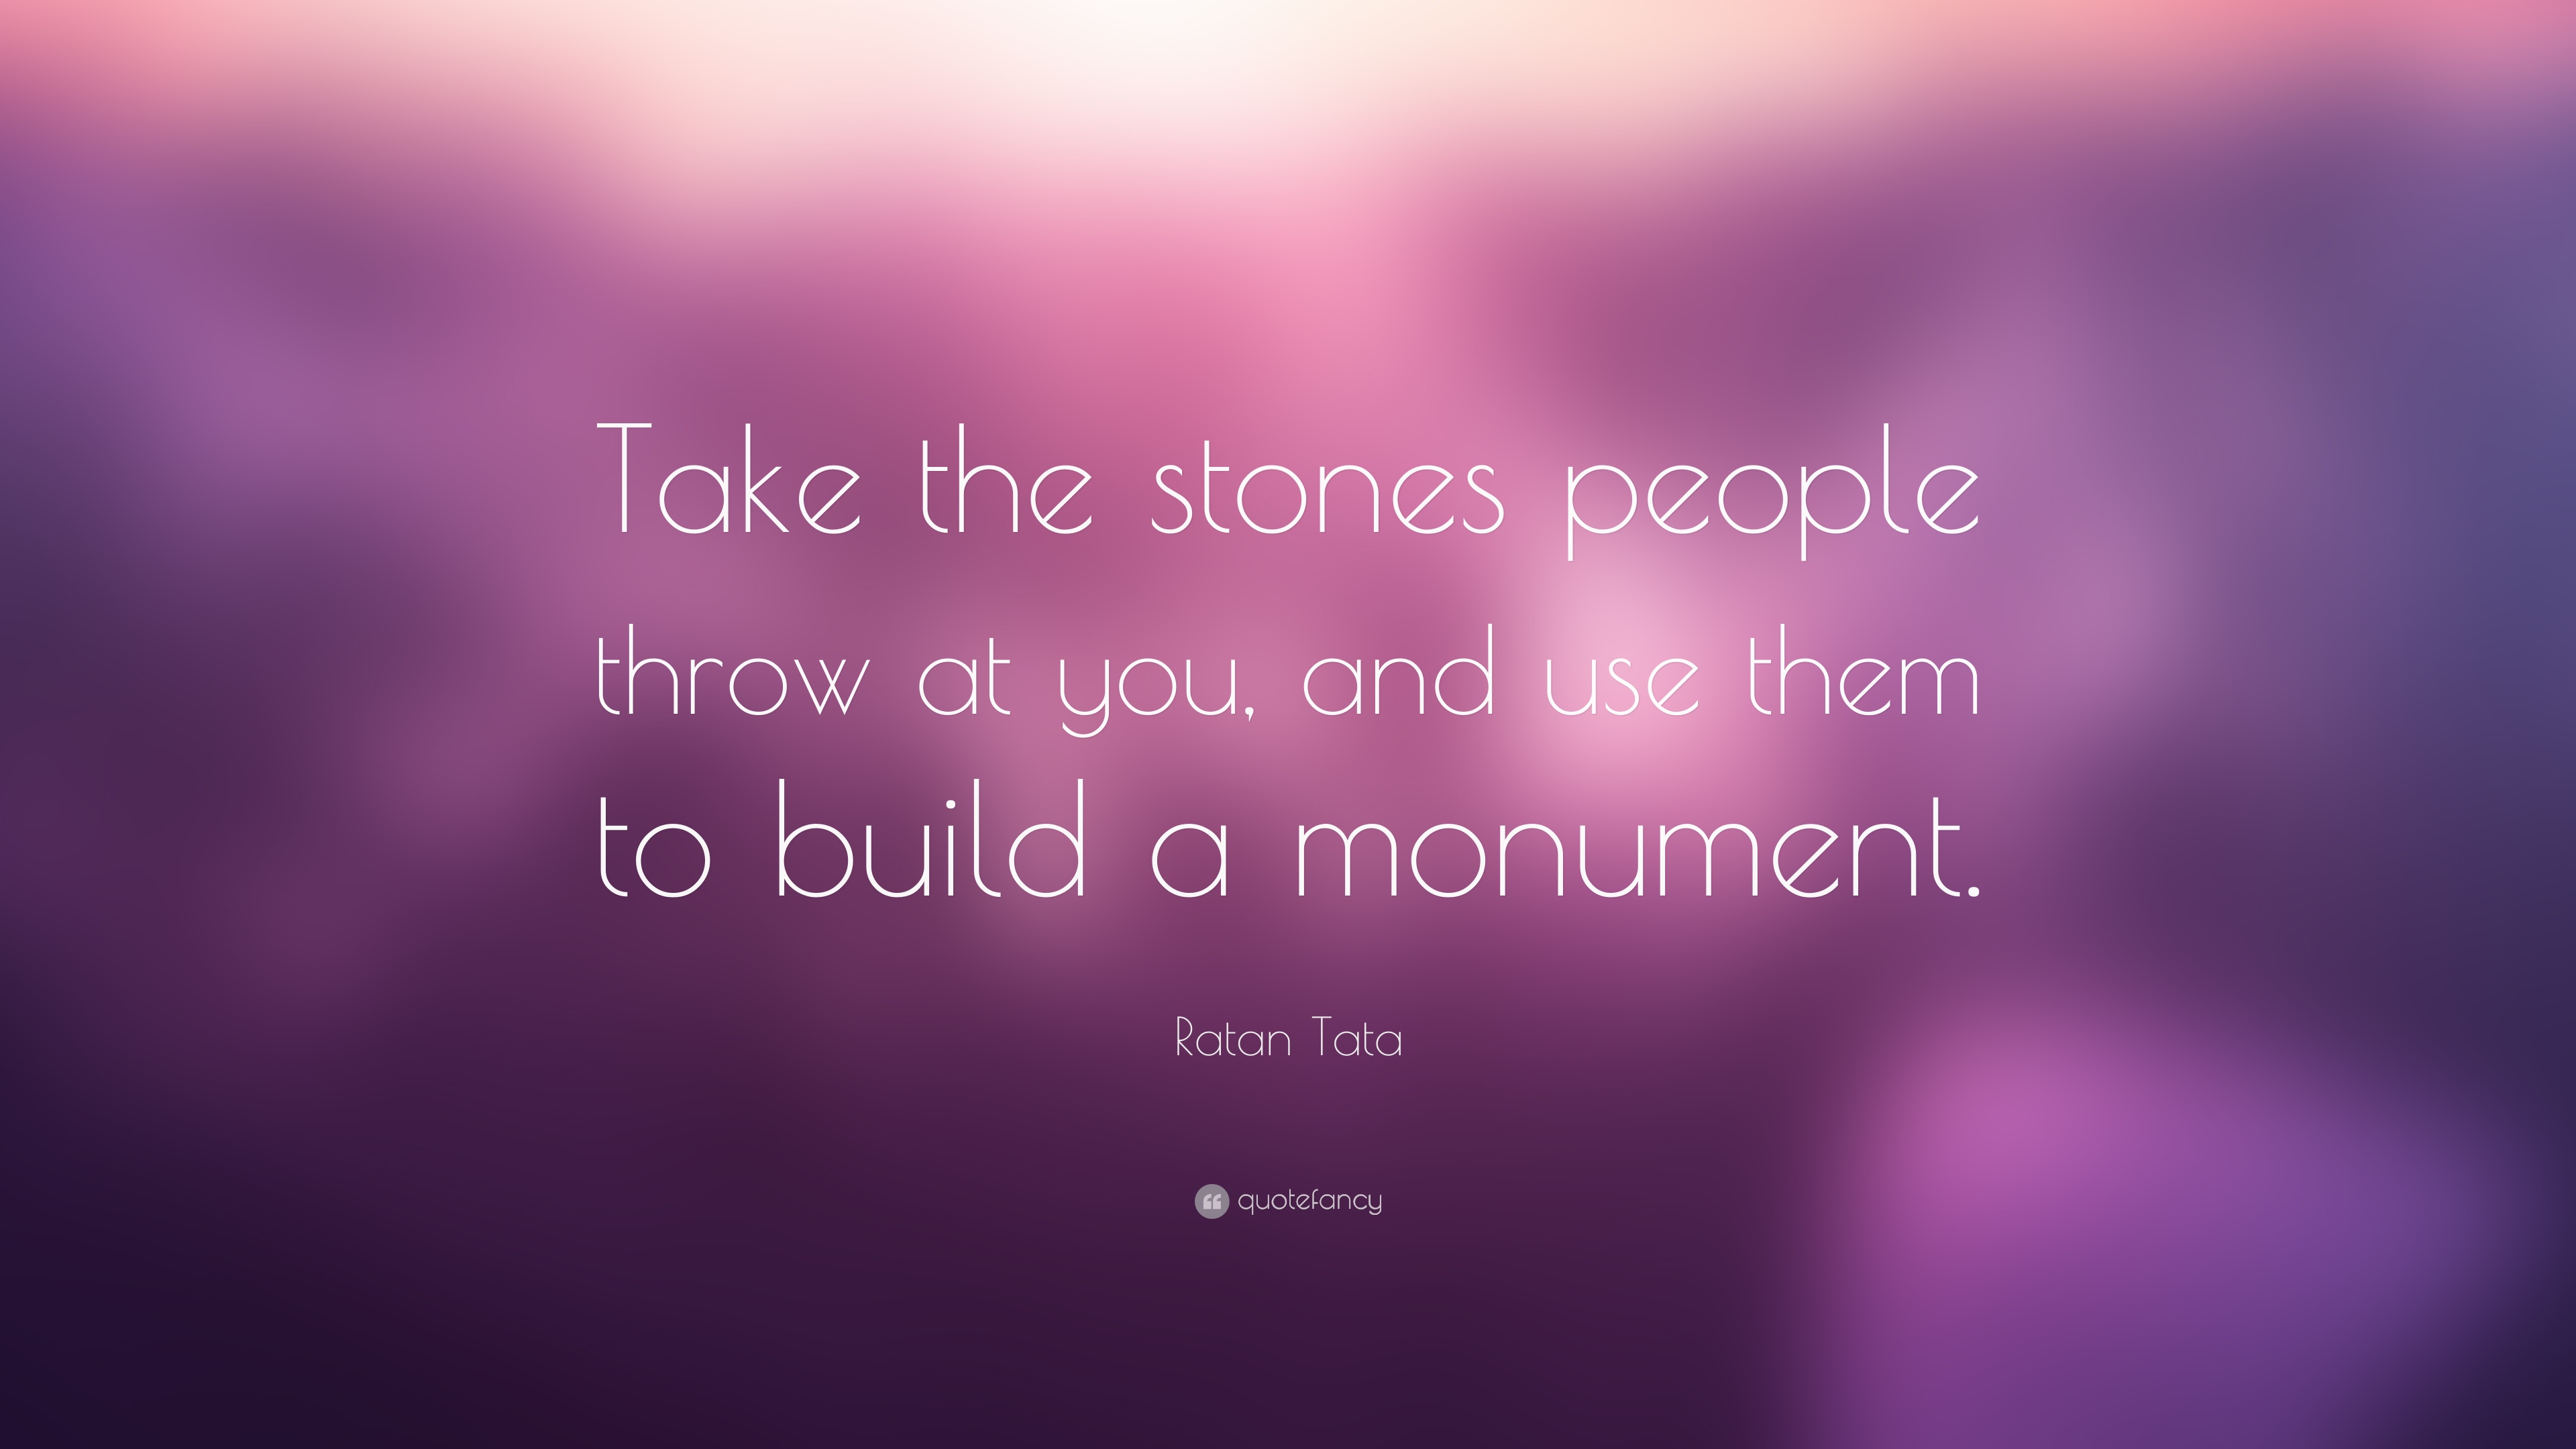 Ratan Tata Quote Take The Stones People Throw At You And Use Them